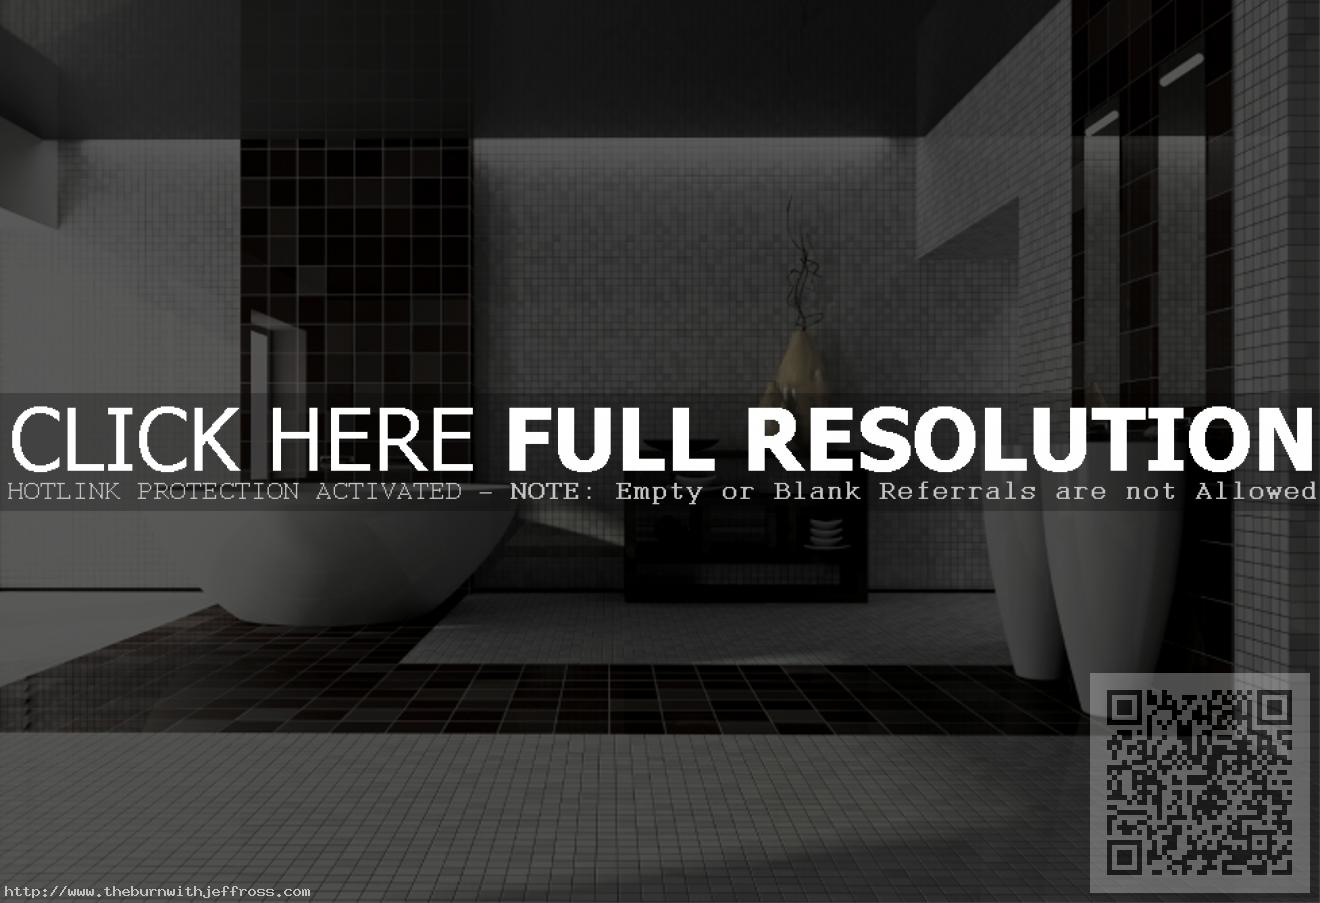 modern-luxury-bathroom-design-showing-grey-black-square-pattern-ceramic-tile-flooring